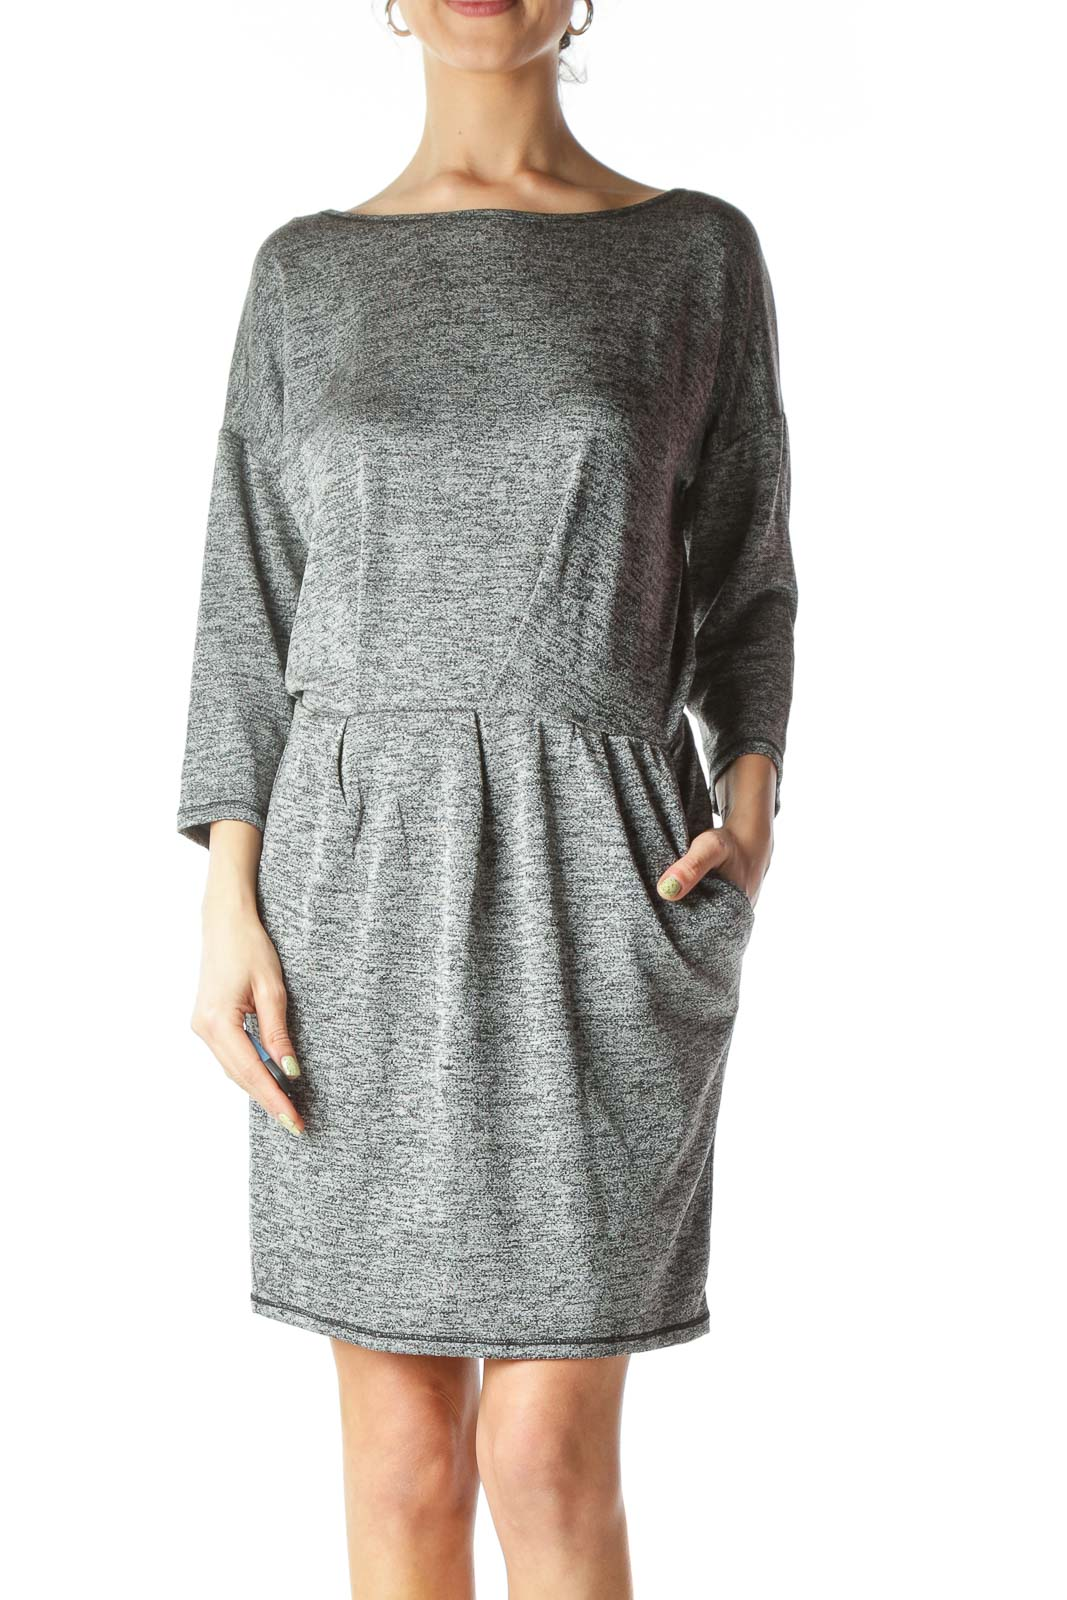 Gray Textured Stretch Pocketed Work Dress